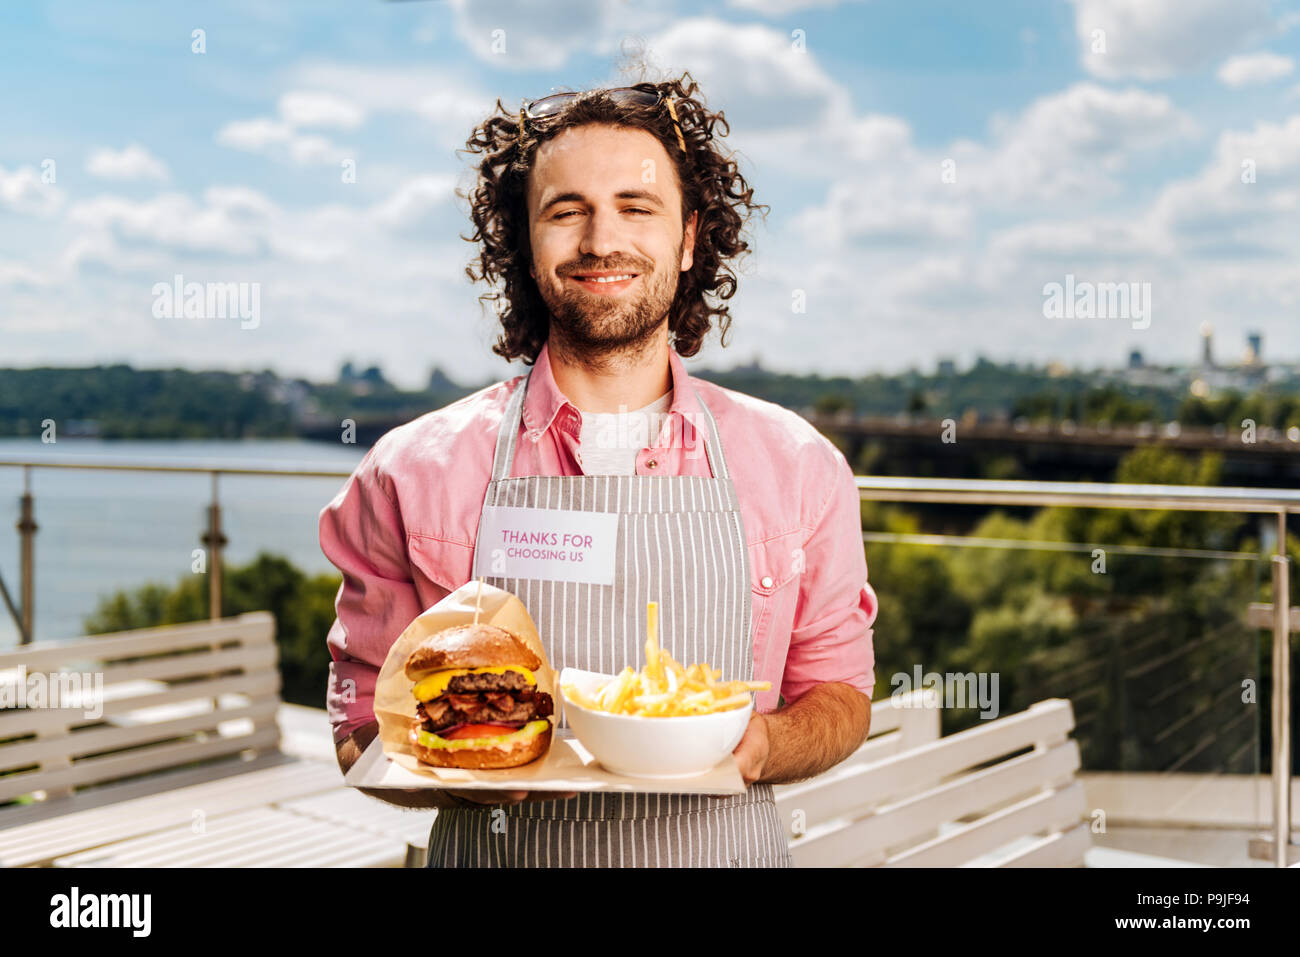 Fast food worker bringing burger with fries for his clients - Stock Image